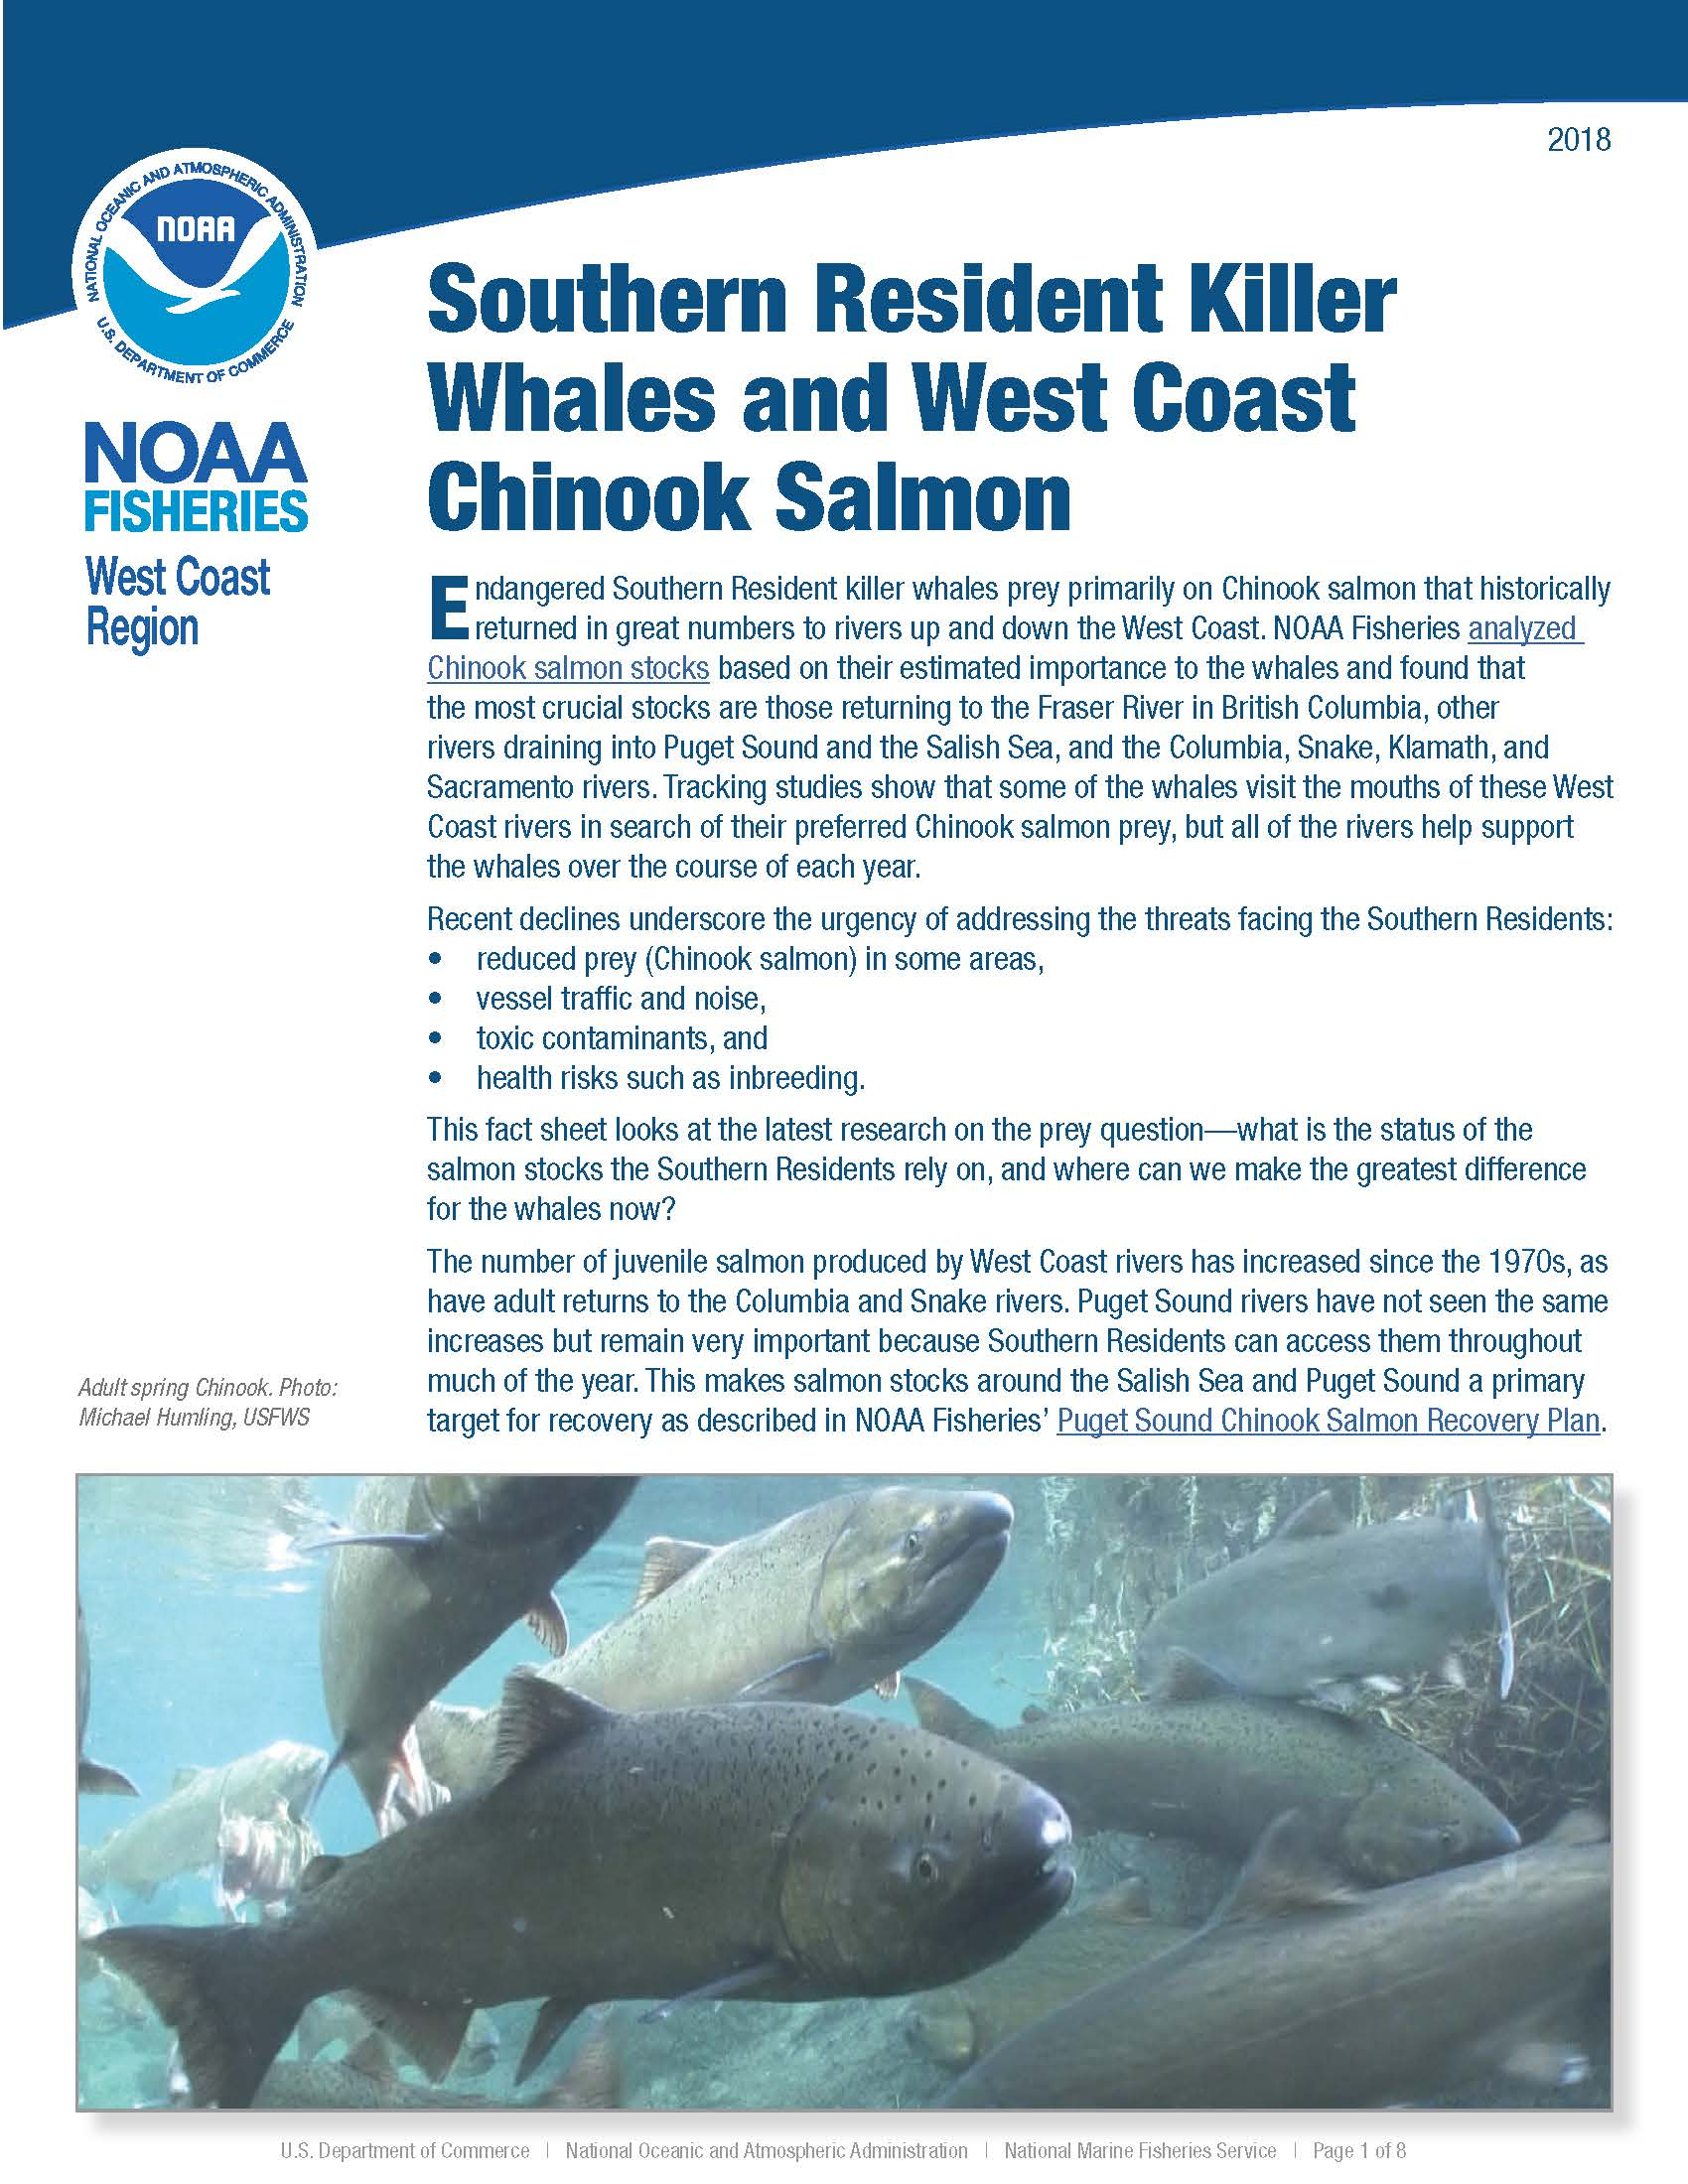 Southern Resident Killer Whales and West Coast Chinook Salmon